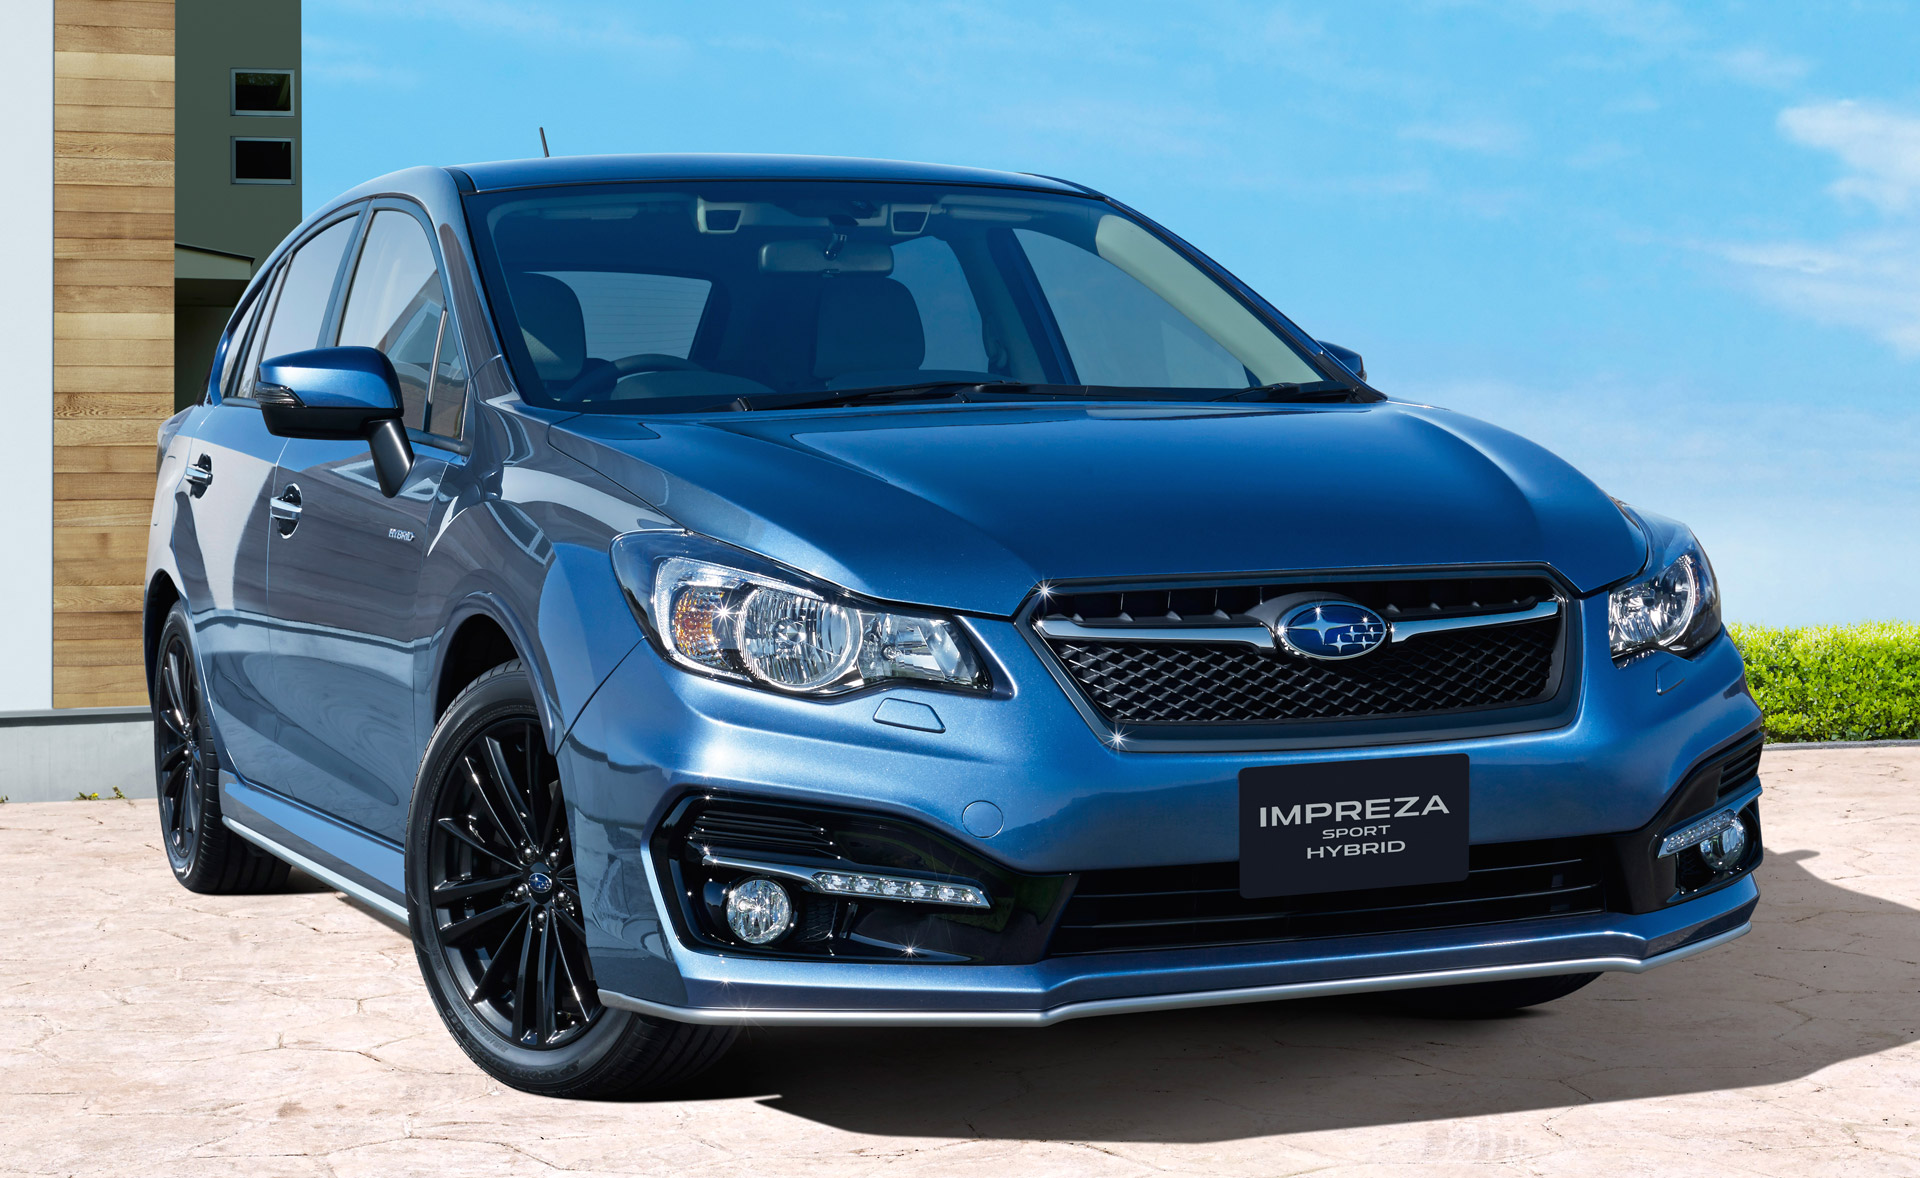 subaru impreza sport hybrid launches in japan. Black Bedroom Furniture Sets. Home Design Ideas